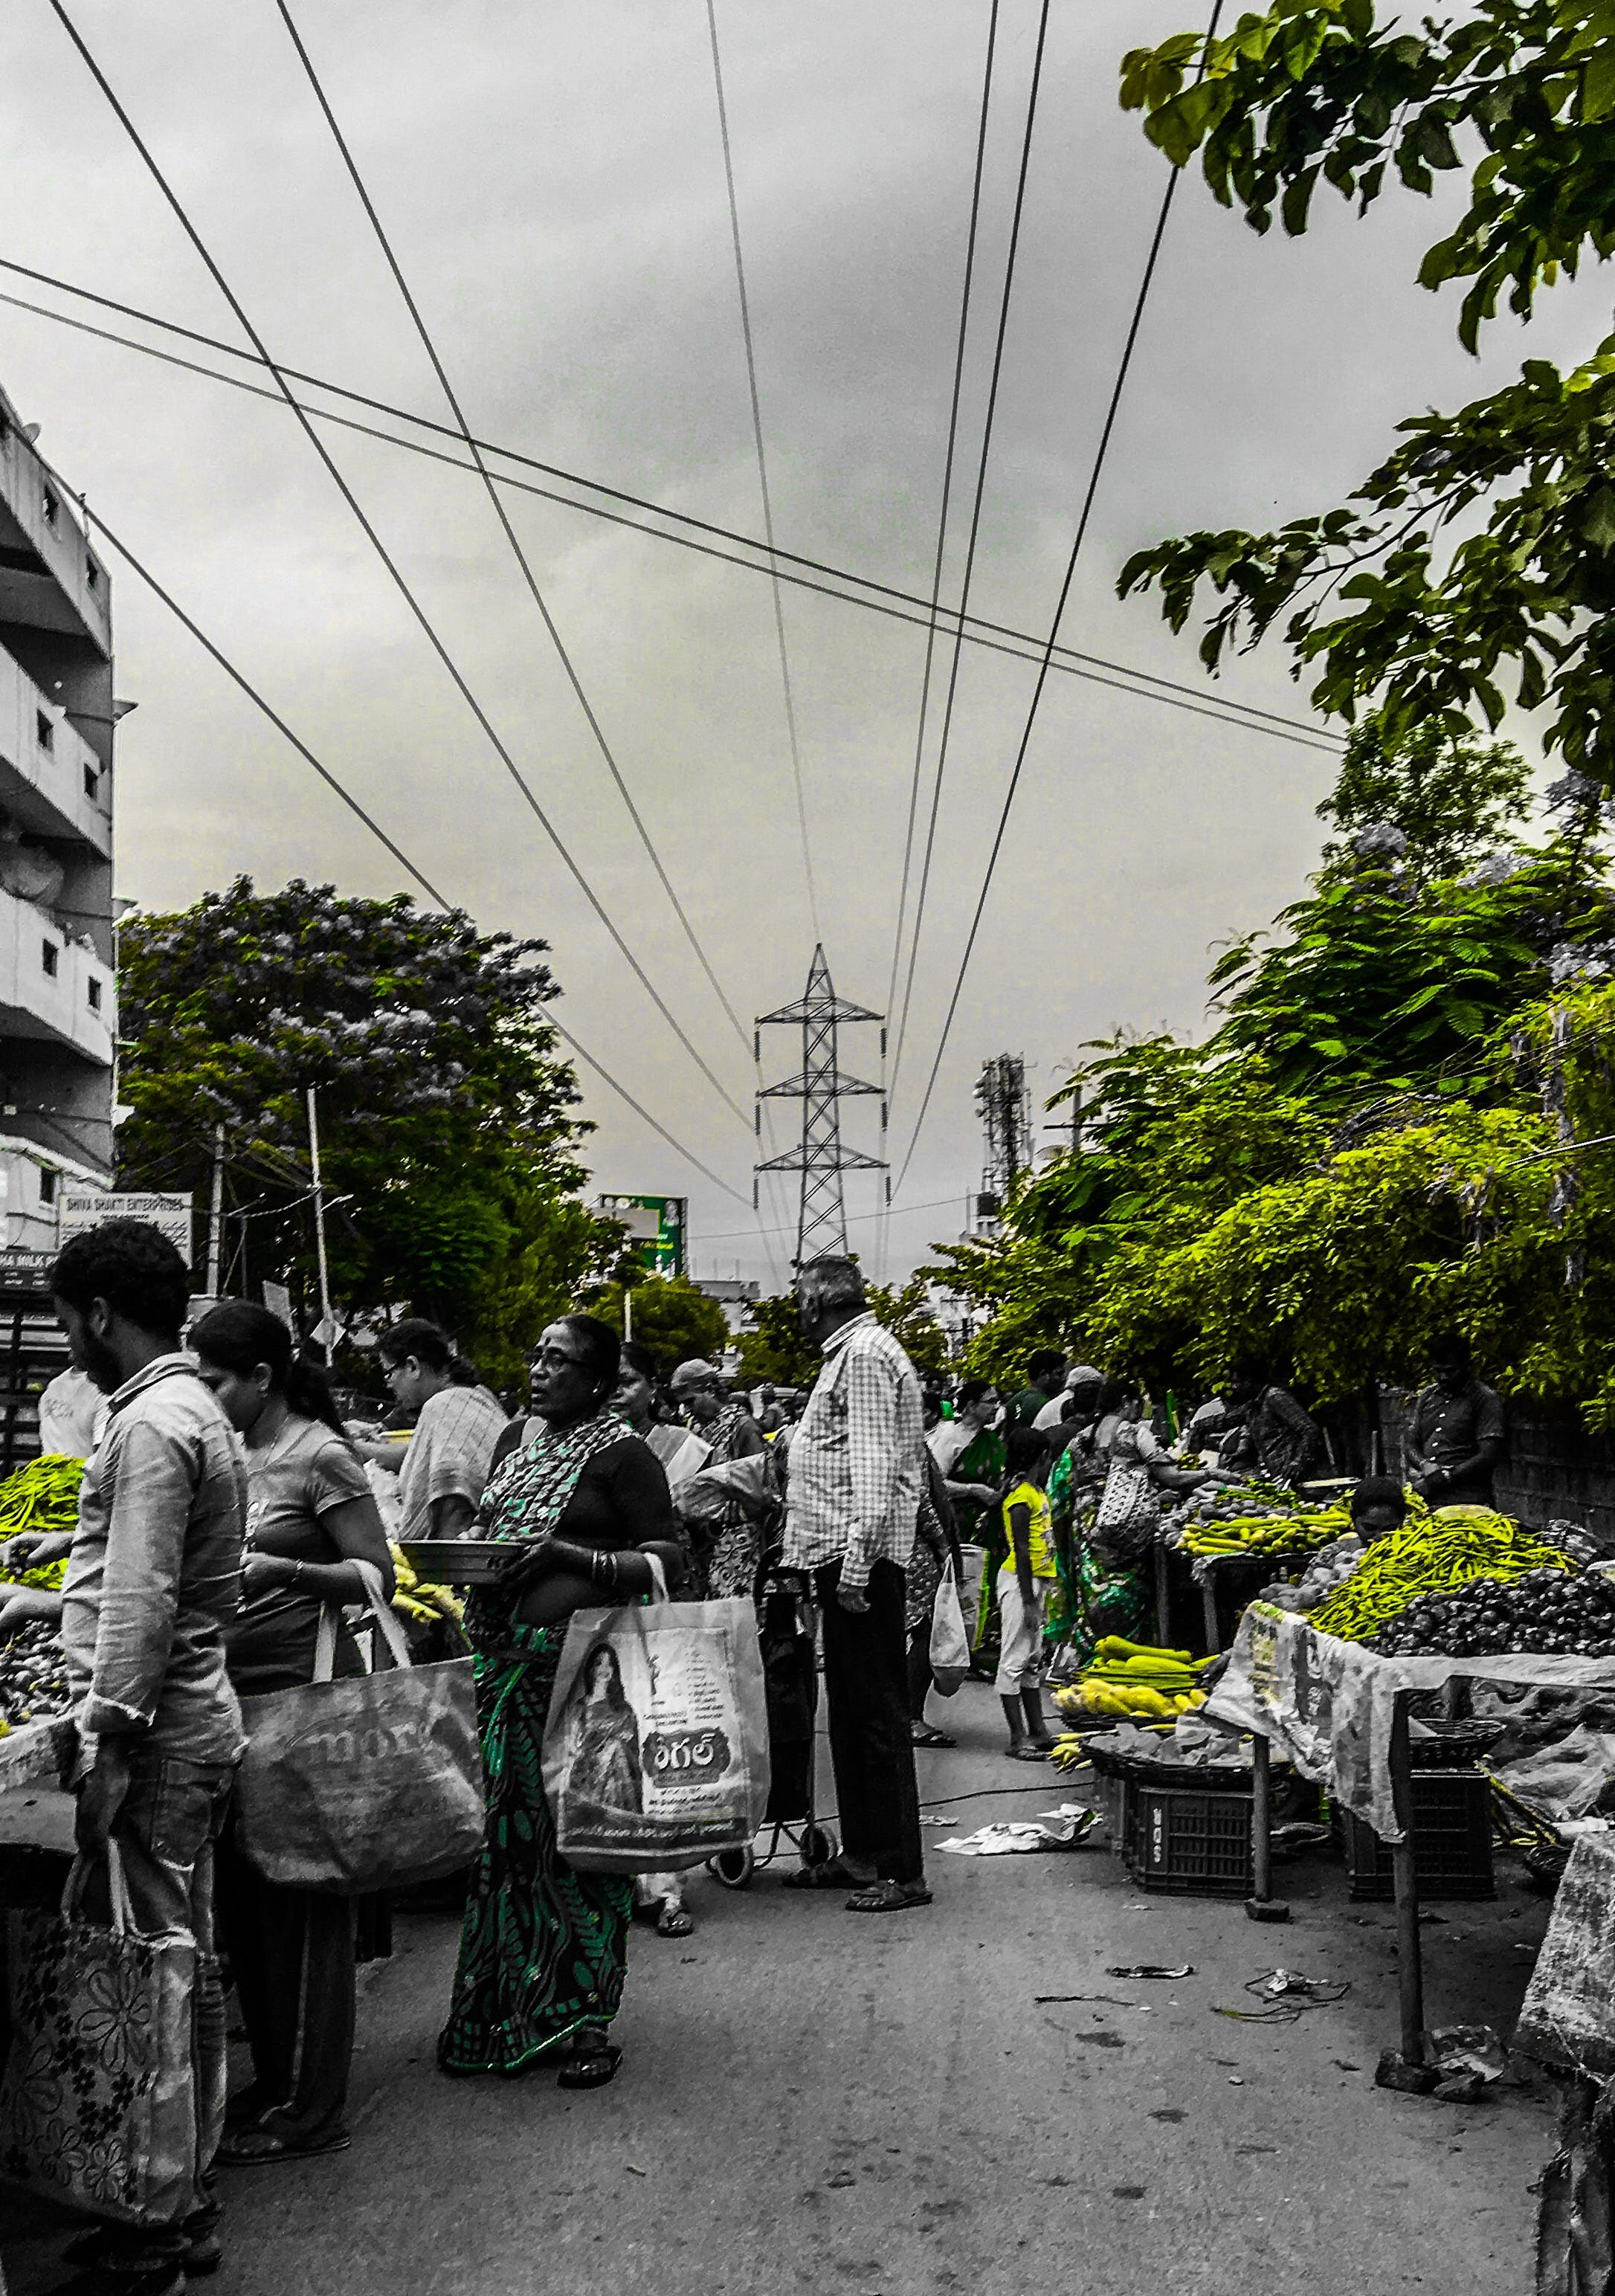 Free stock photo of #green, #india, color splash, farmers market